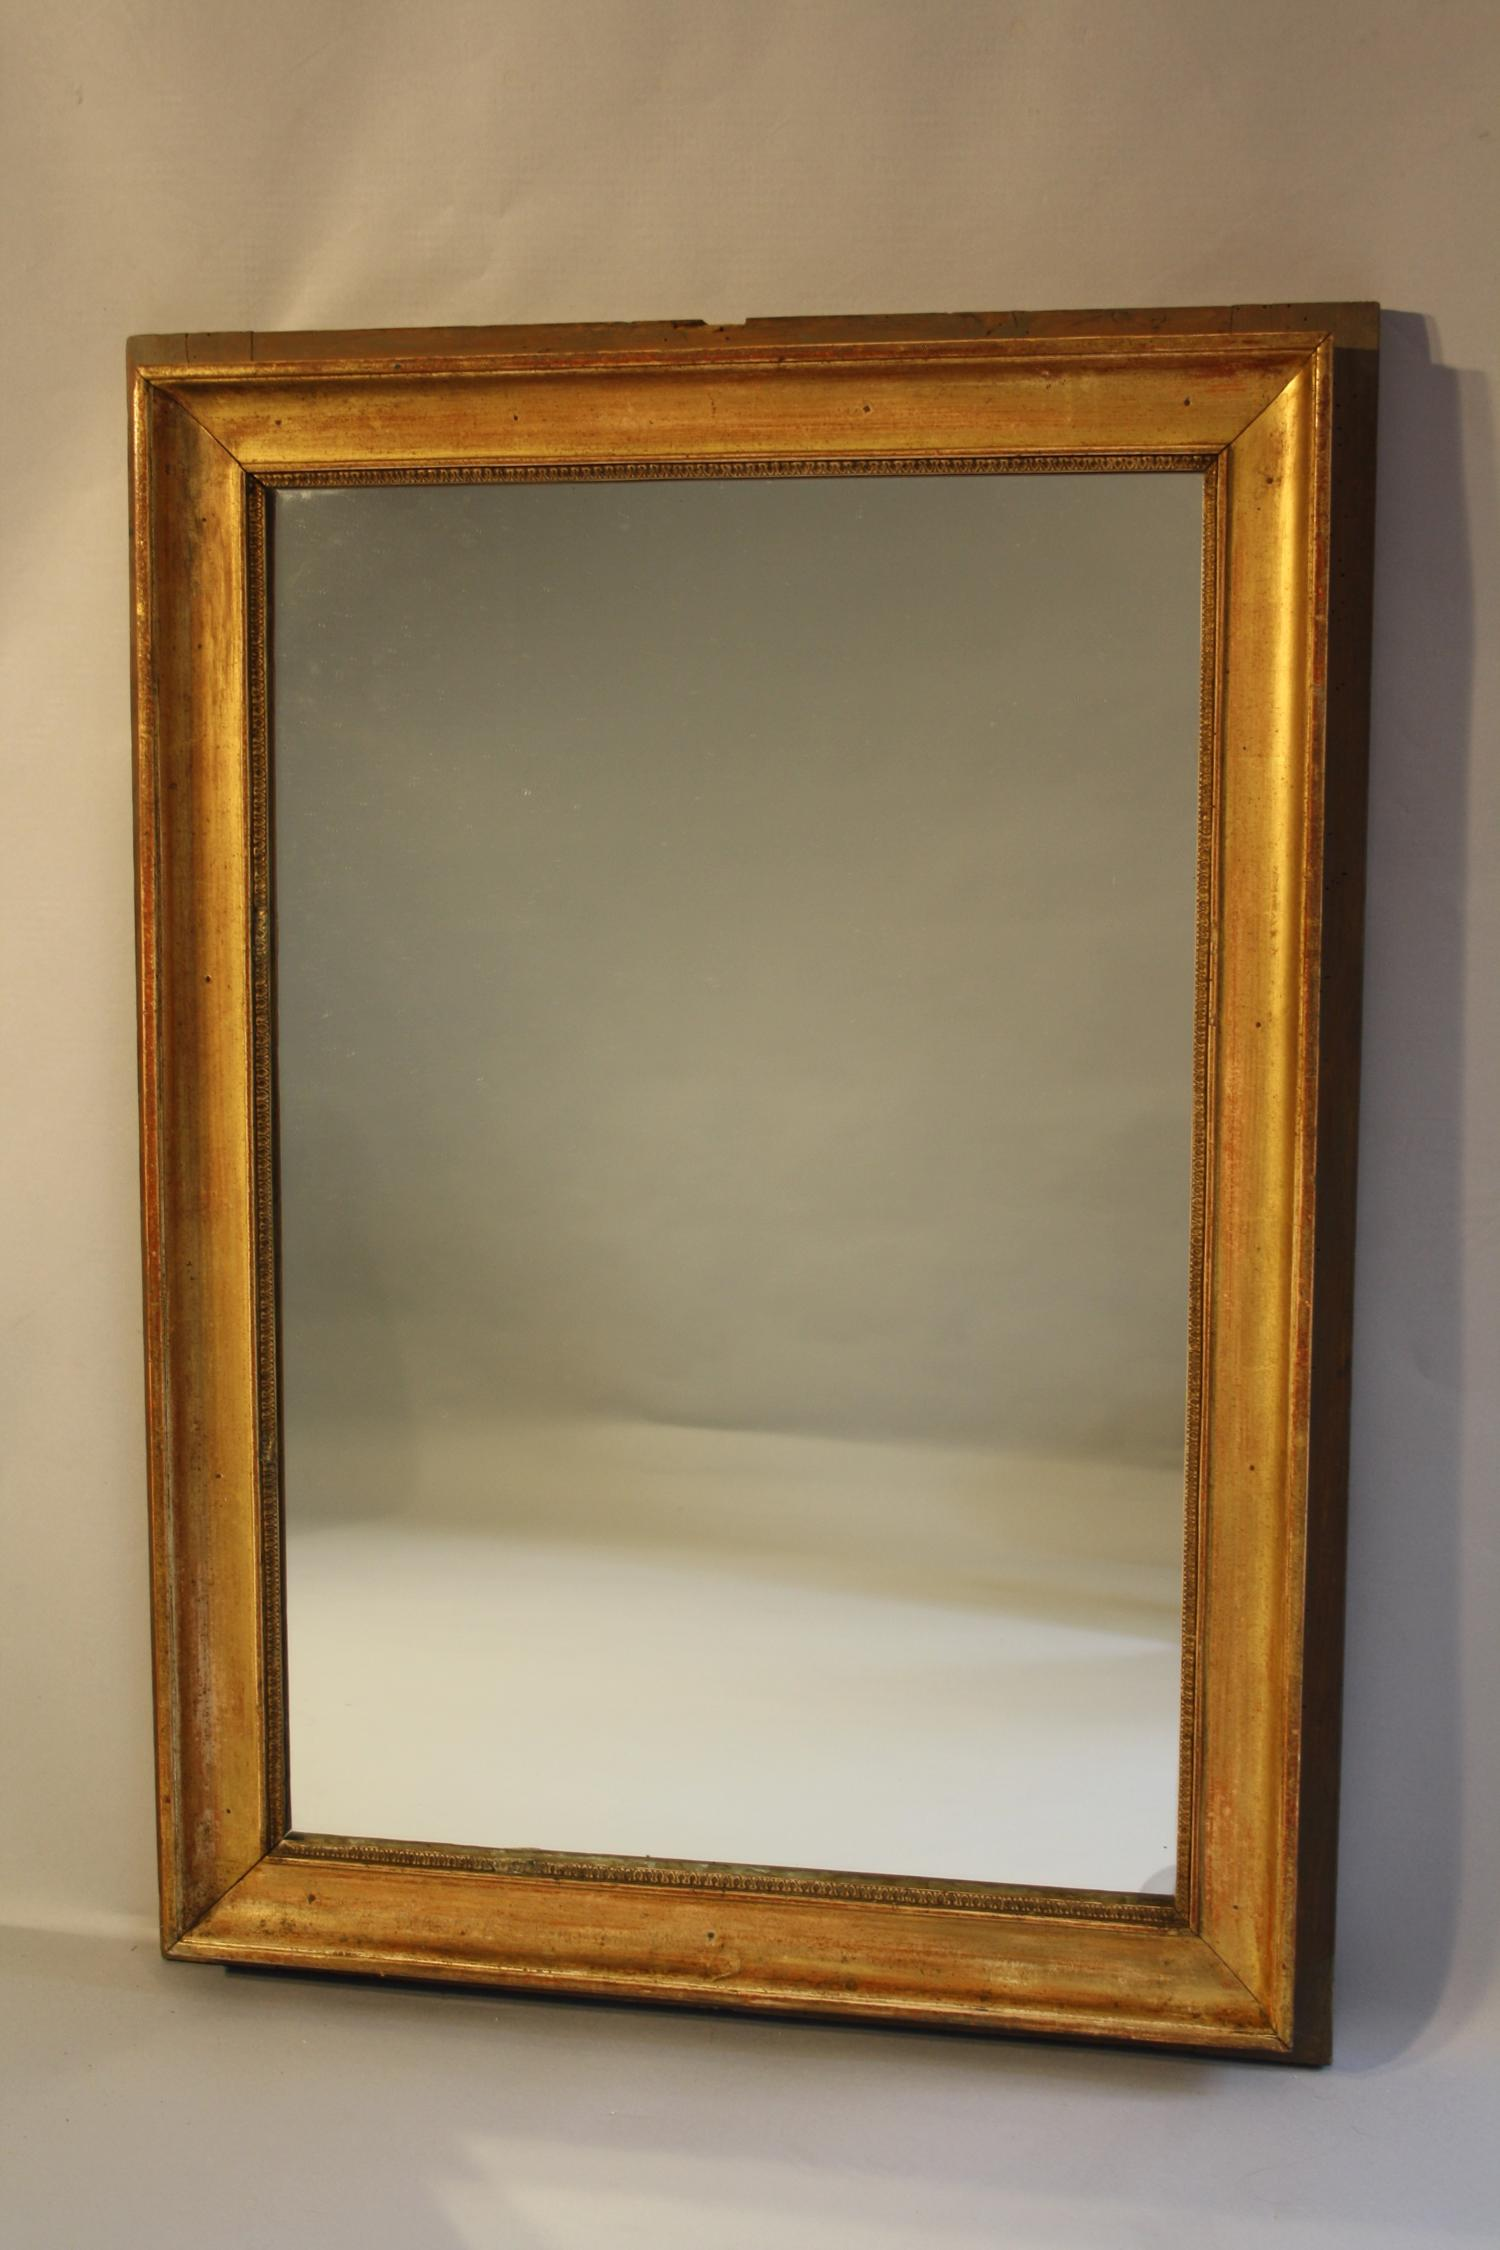 Rectangular gilt panel mirror